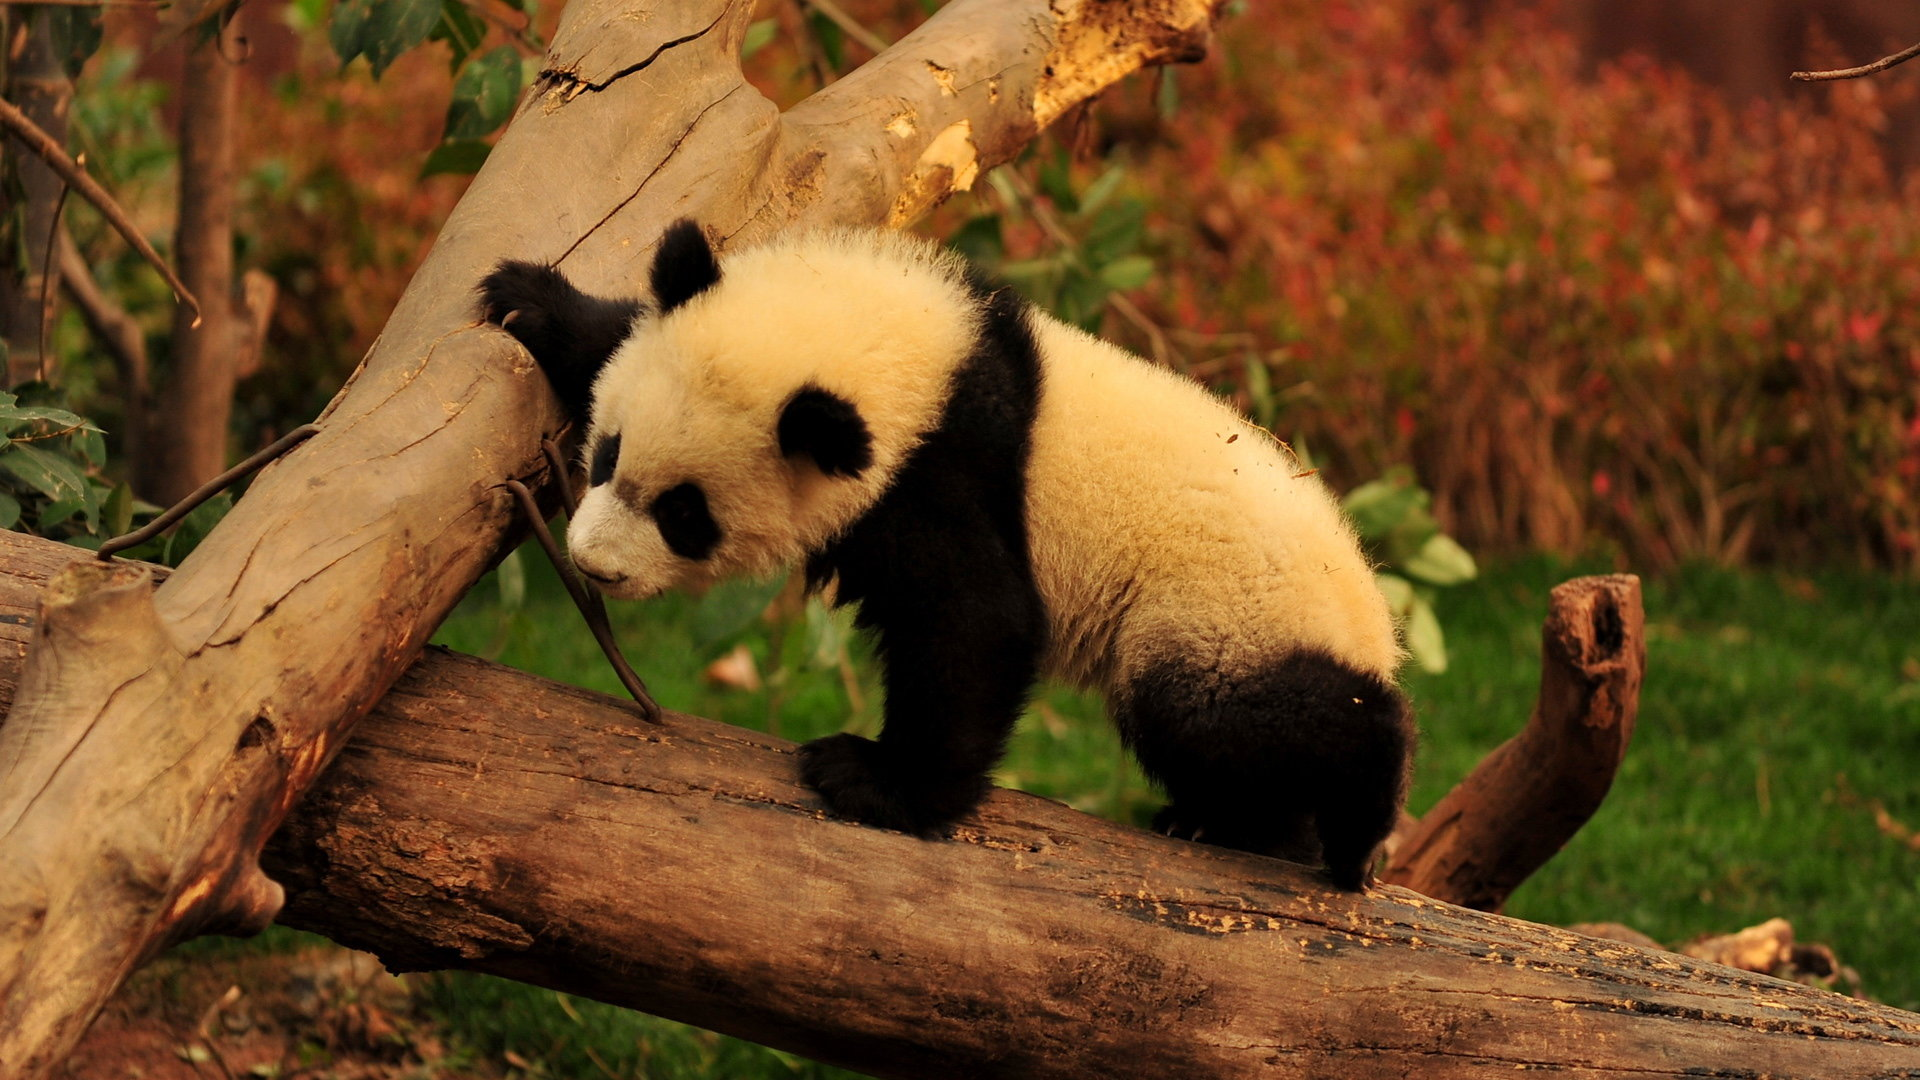 Download hd 1080p Panda desktop background ID:300418 for free